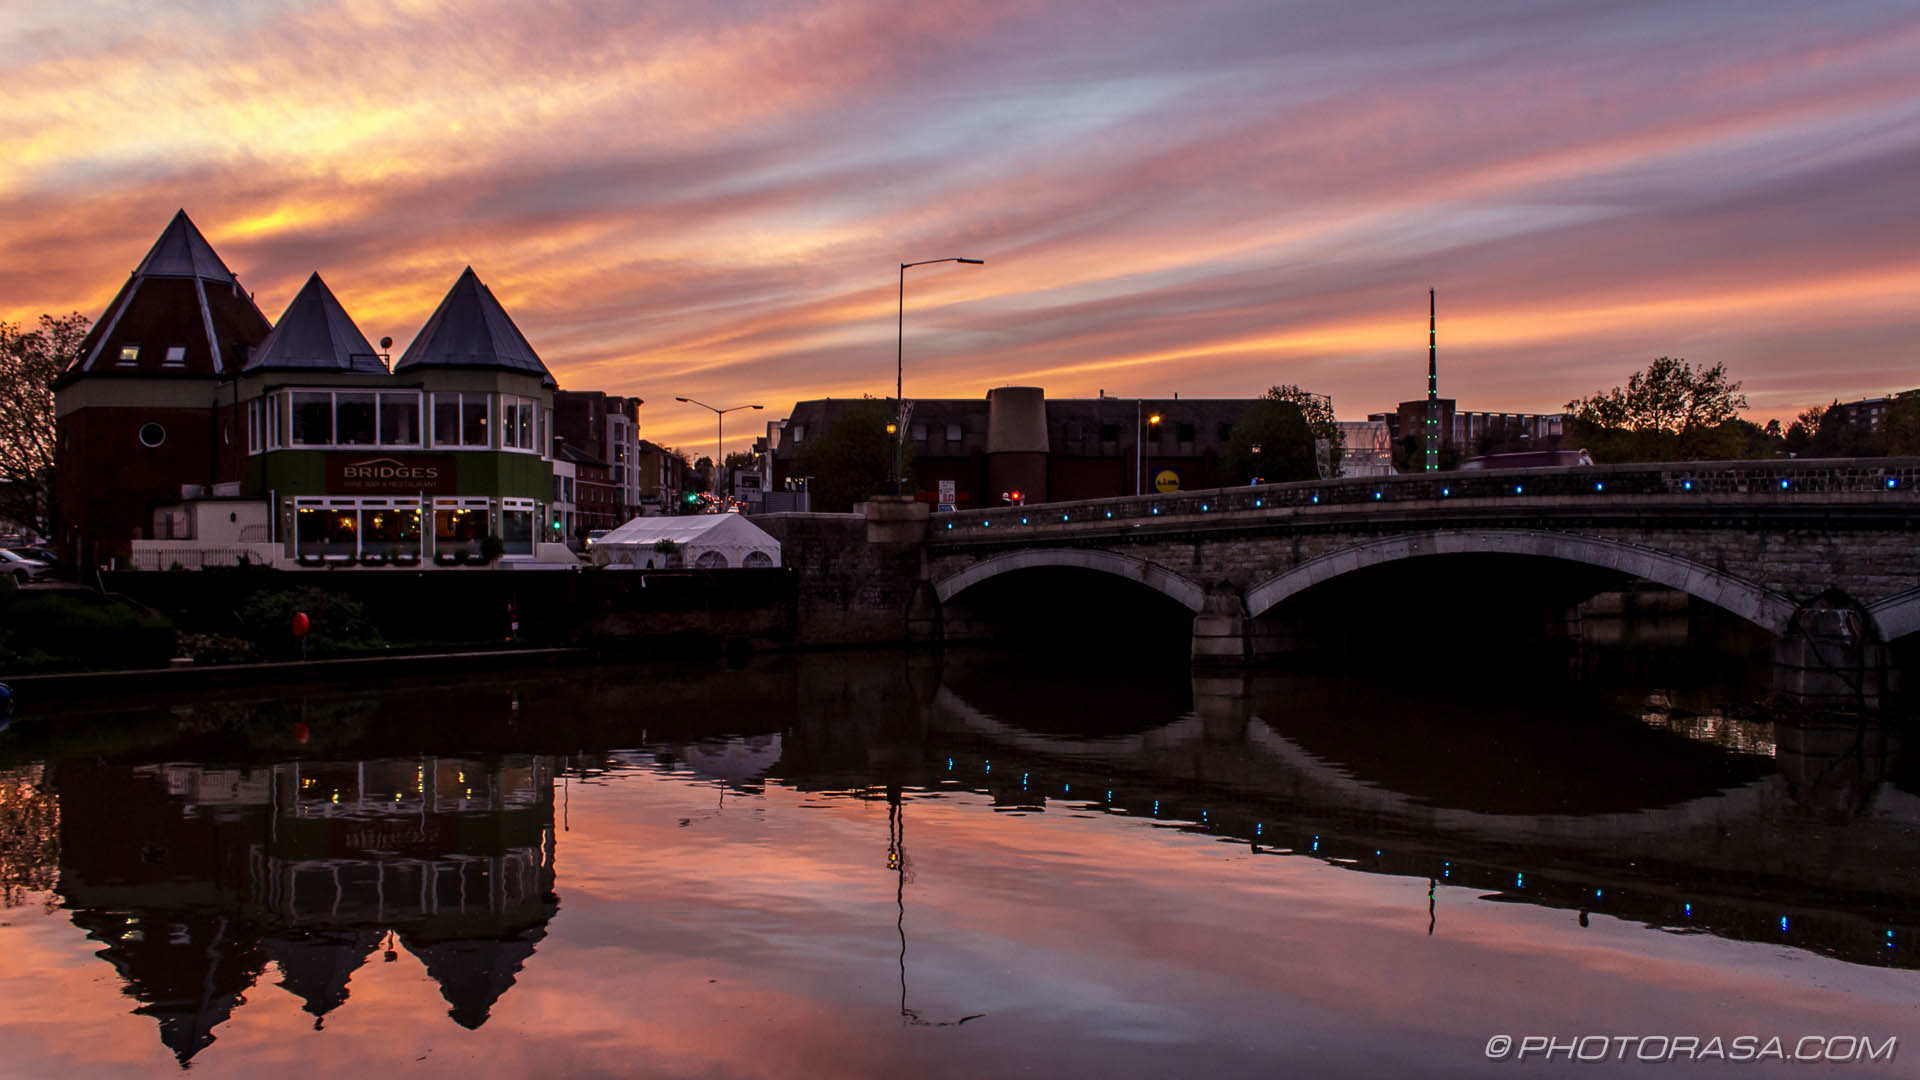 http://photorasa.com/red-sky-night/red-sunset-on-river-medway/